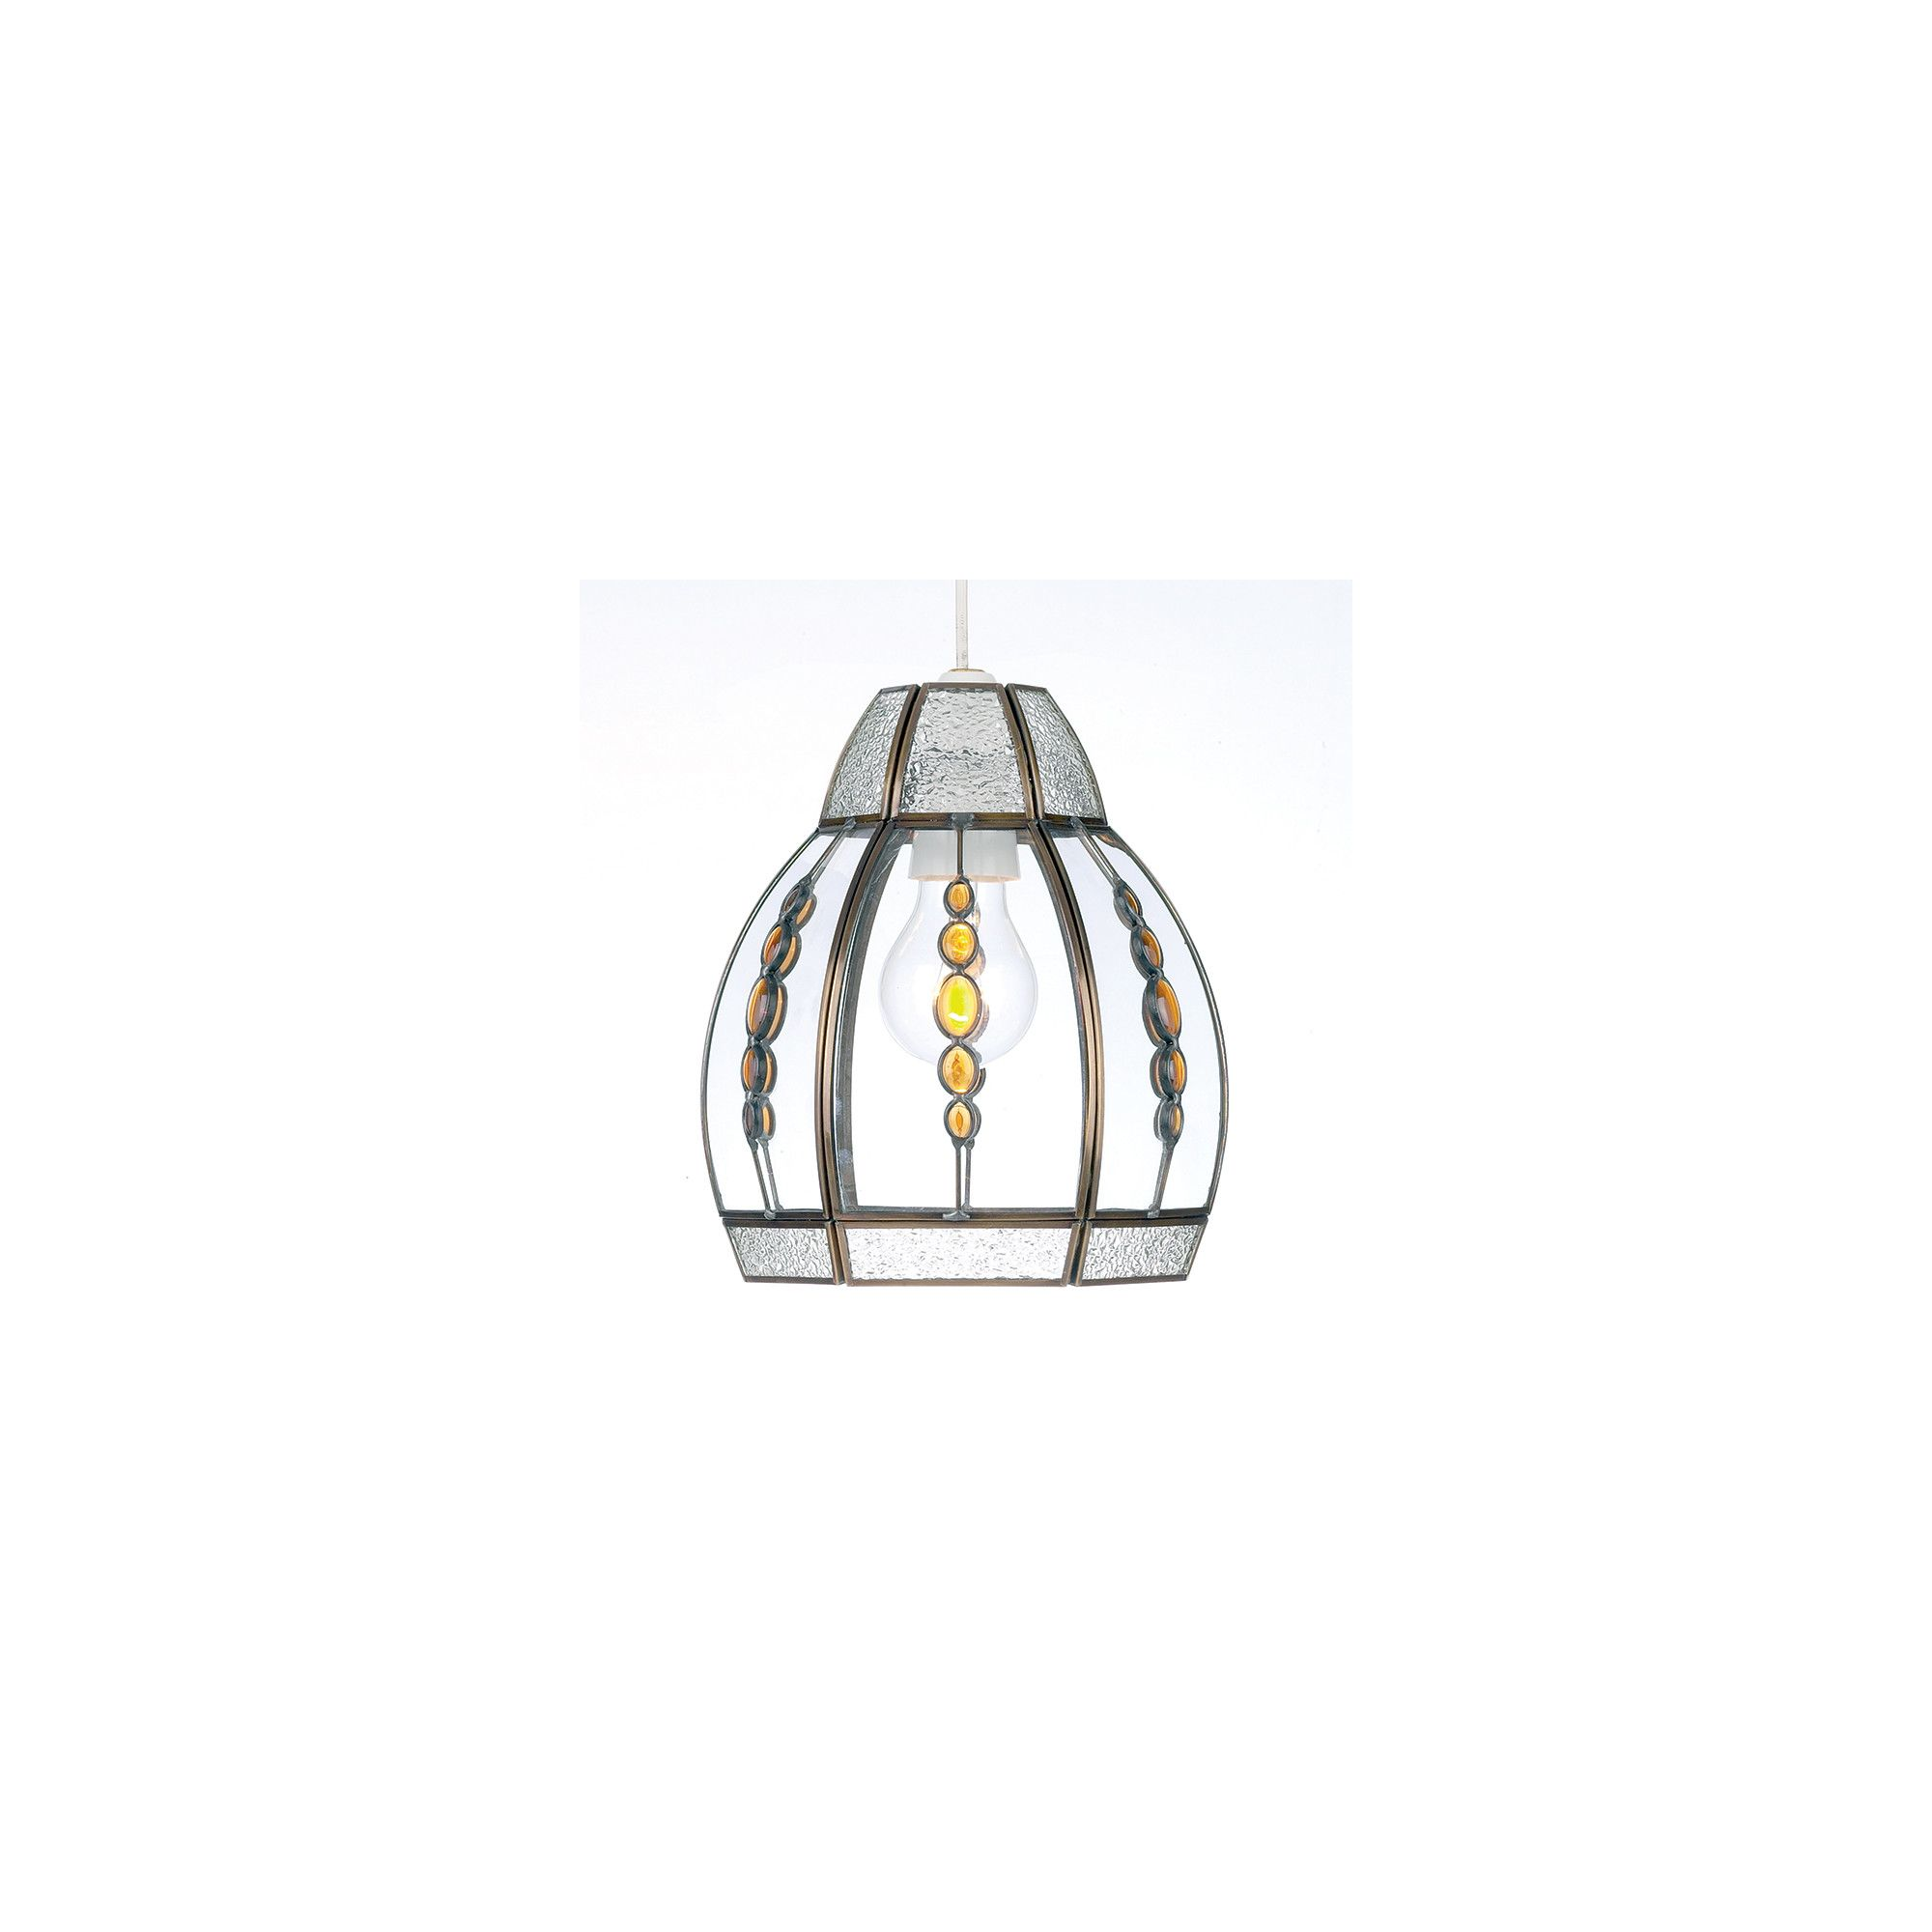 Endon Lighting Pendant in Antique Plated with Amber Beads